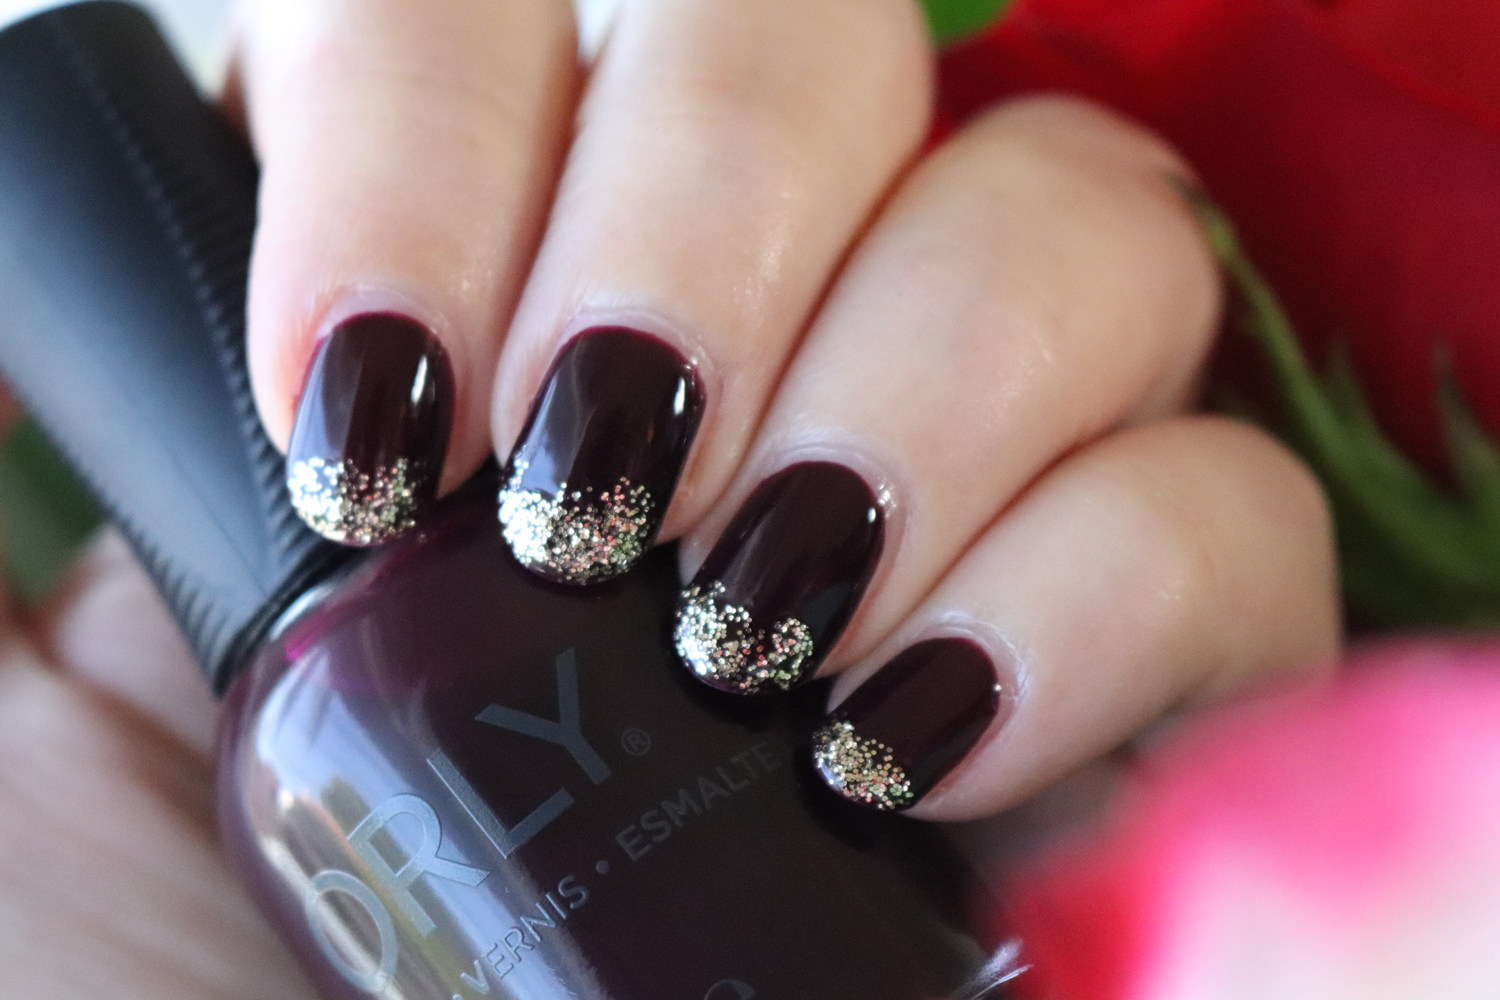 Orly Holiday 2020 Nails